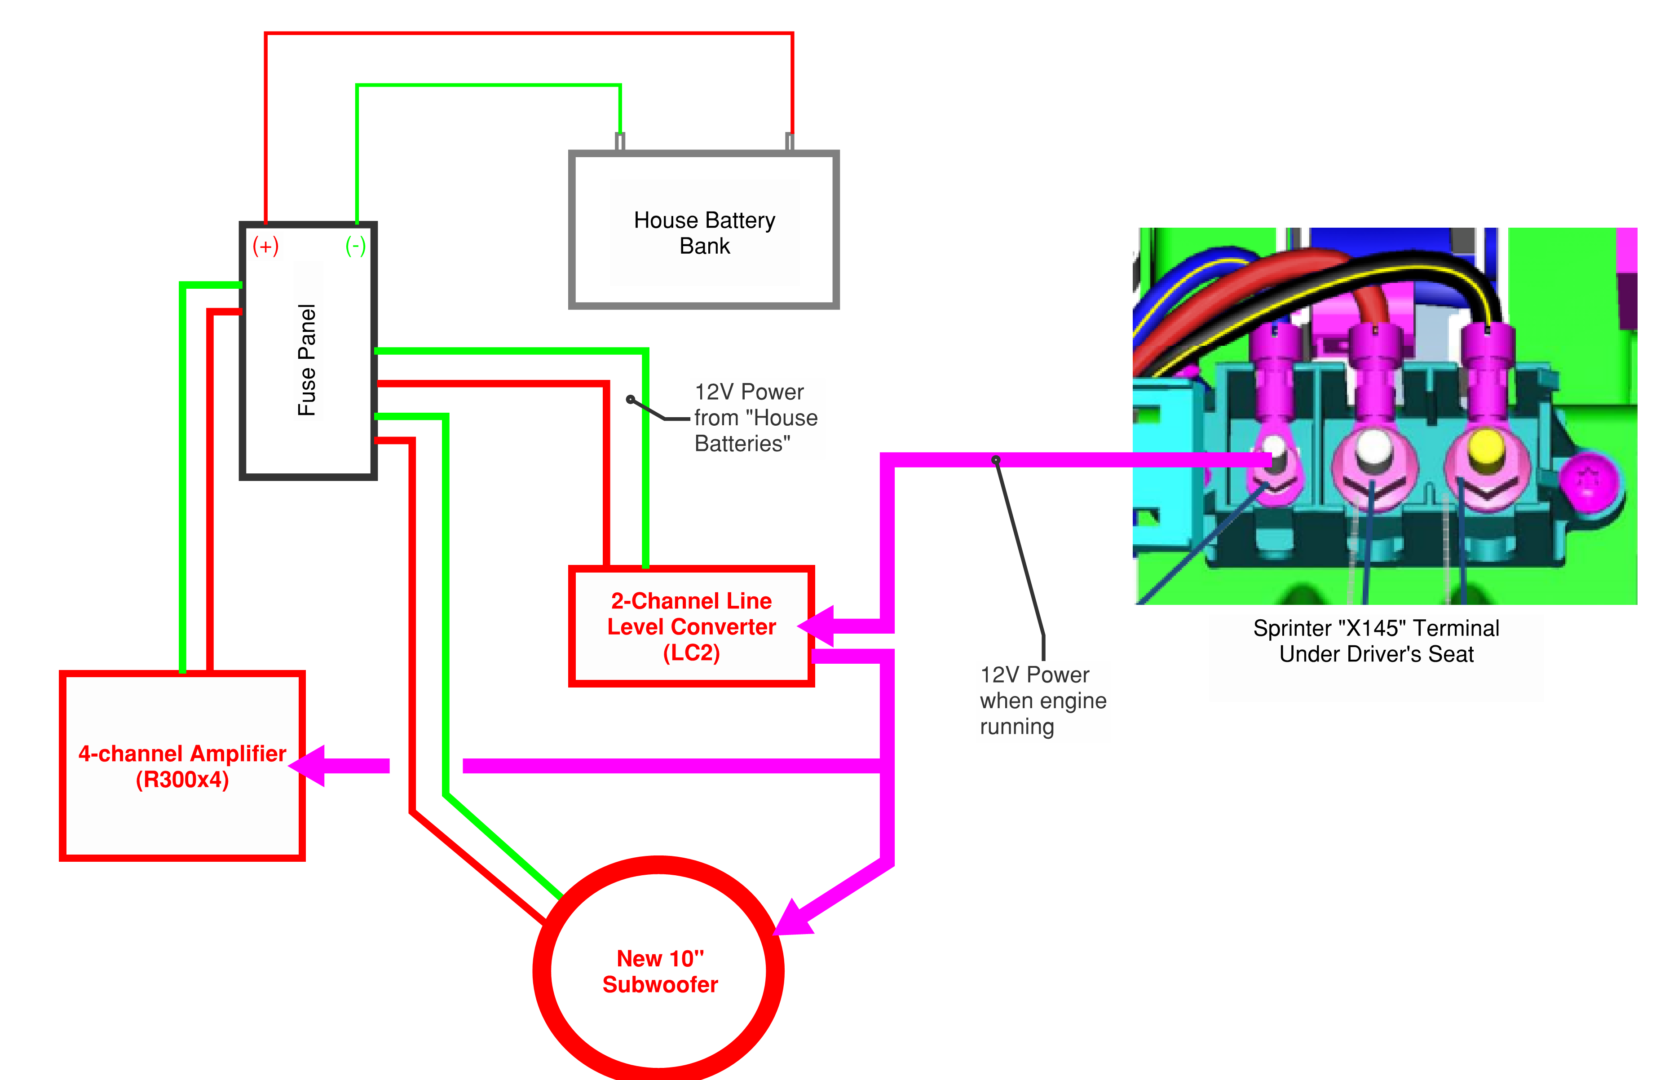 Sprinter Stock Stereo Upgrade And Speaker Replacement Points Unknown Usb Powered Audio Power Amplifier Wiring Diagram For The Large Gauge That Is Needed To An Amp I Chose Boss Kit Used Two Of These On My Subwoofer One